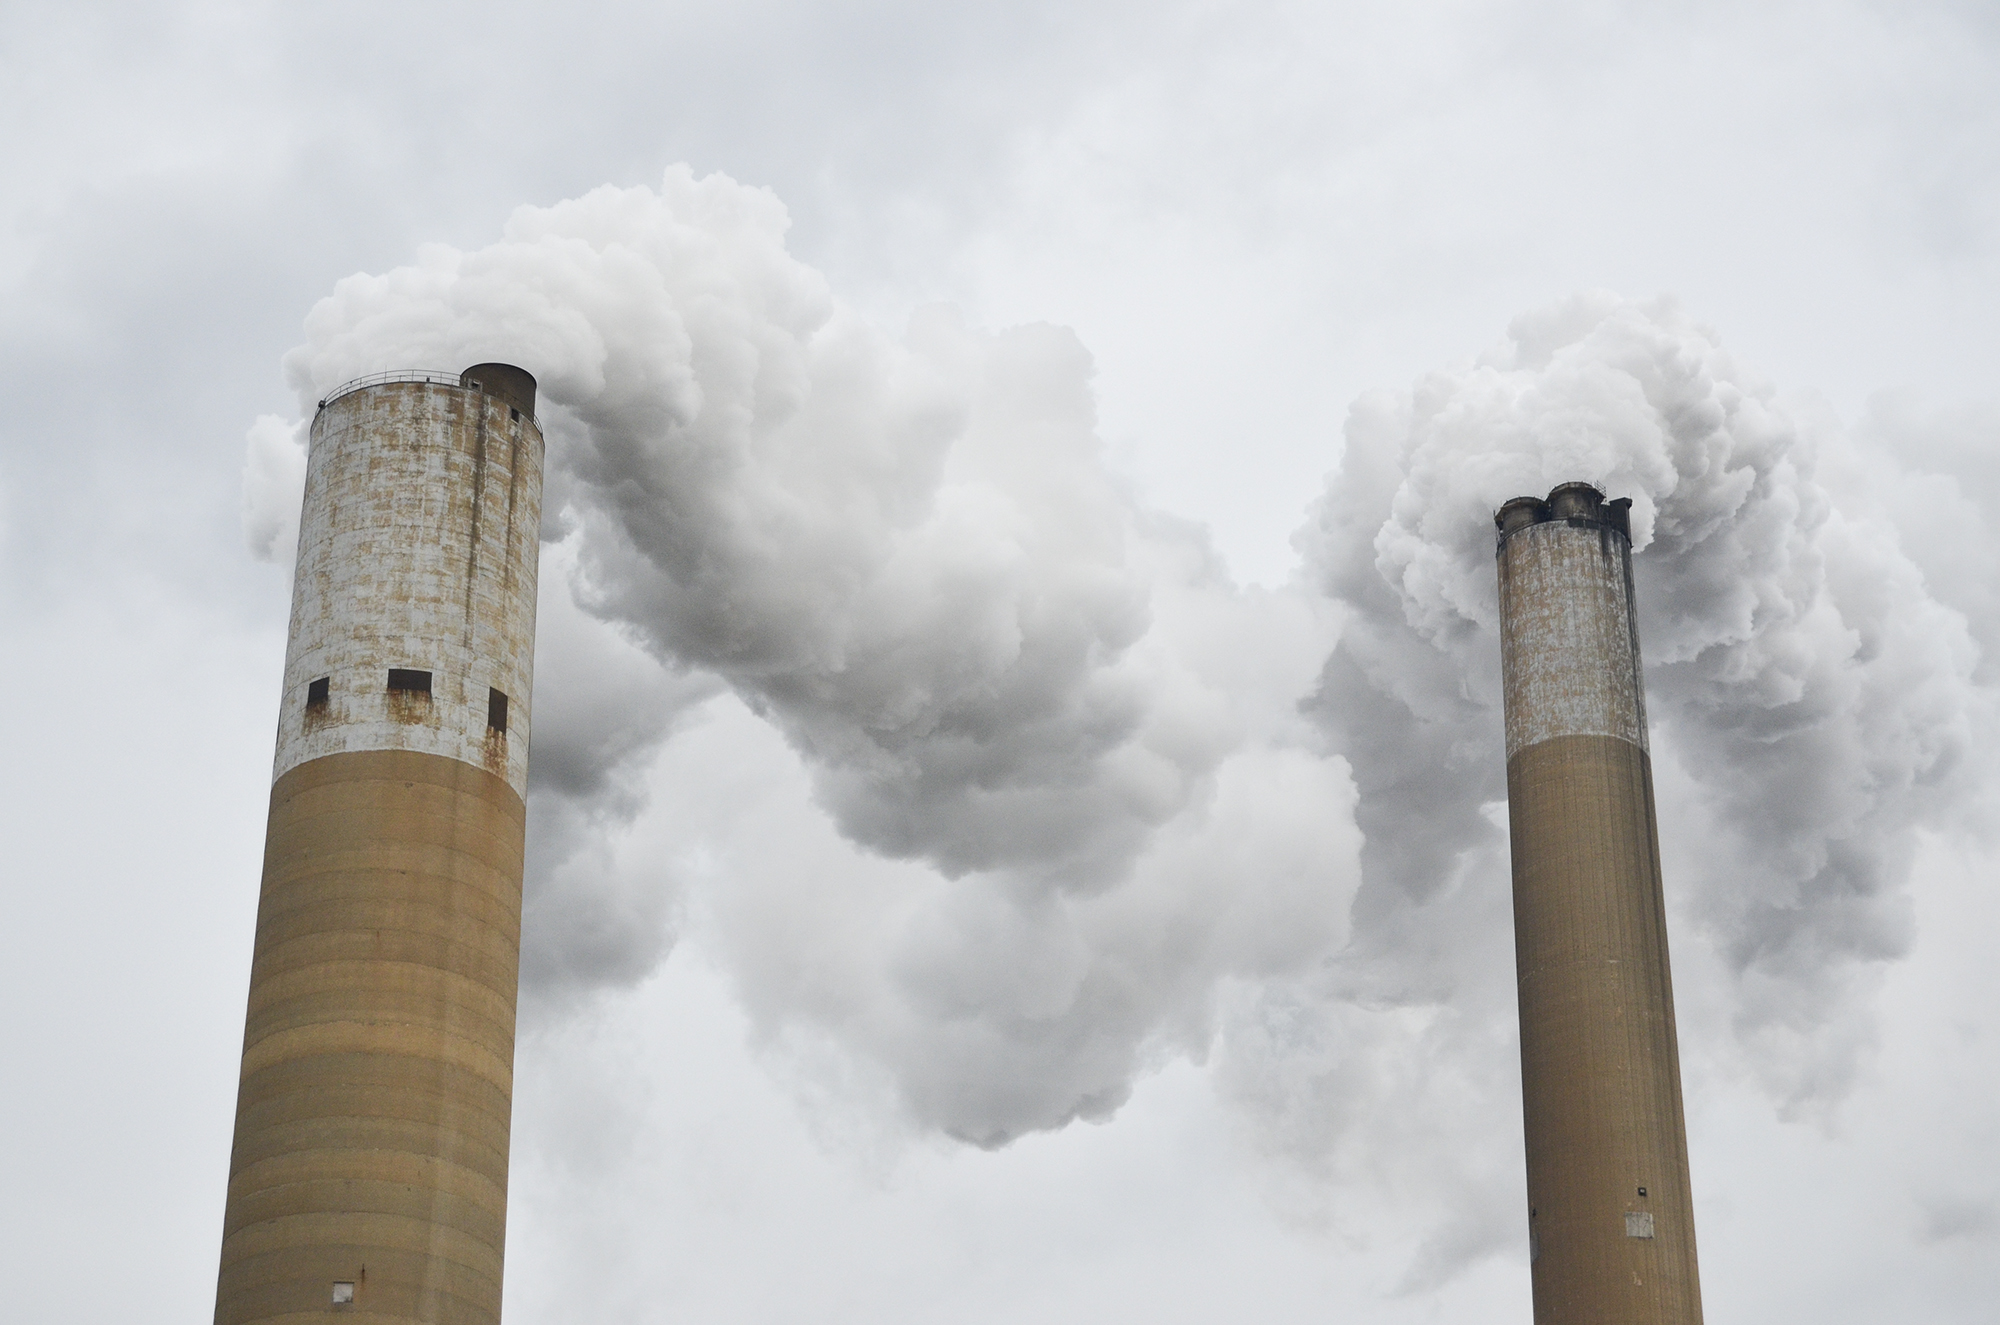 Gov. Wolf plans to have Pennsylvania join a regional effort to cut carbon emissions